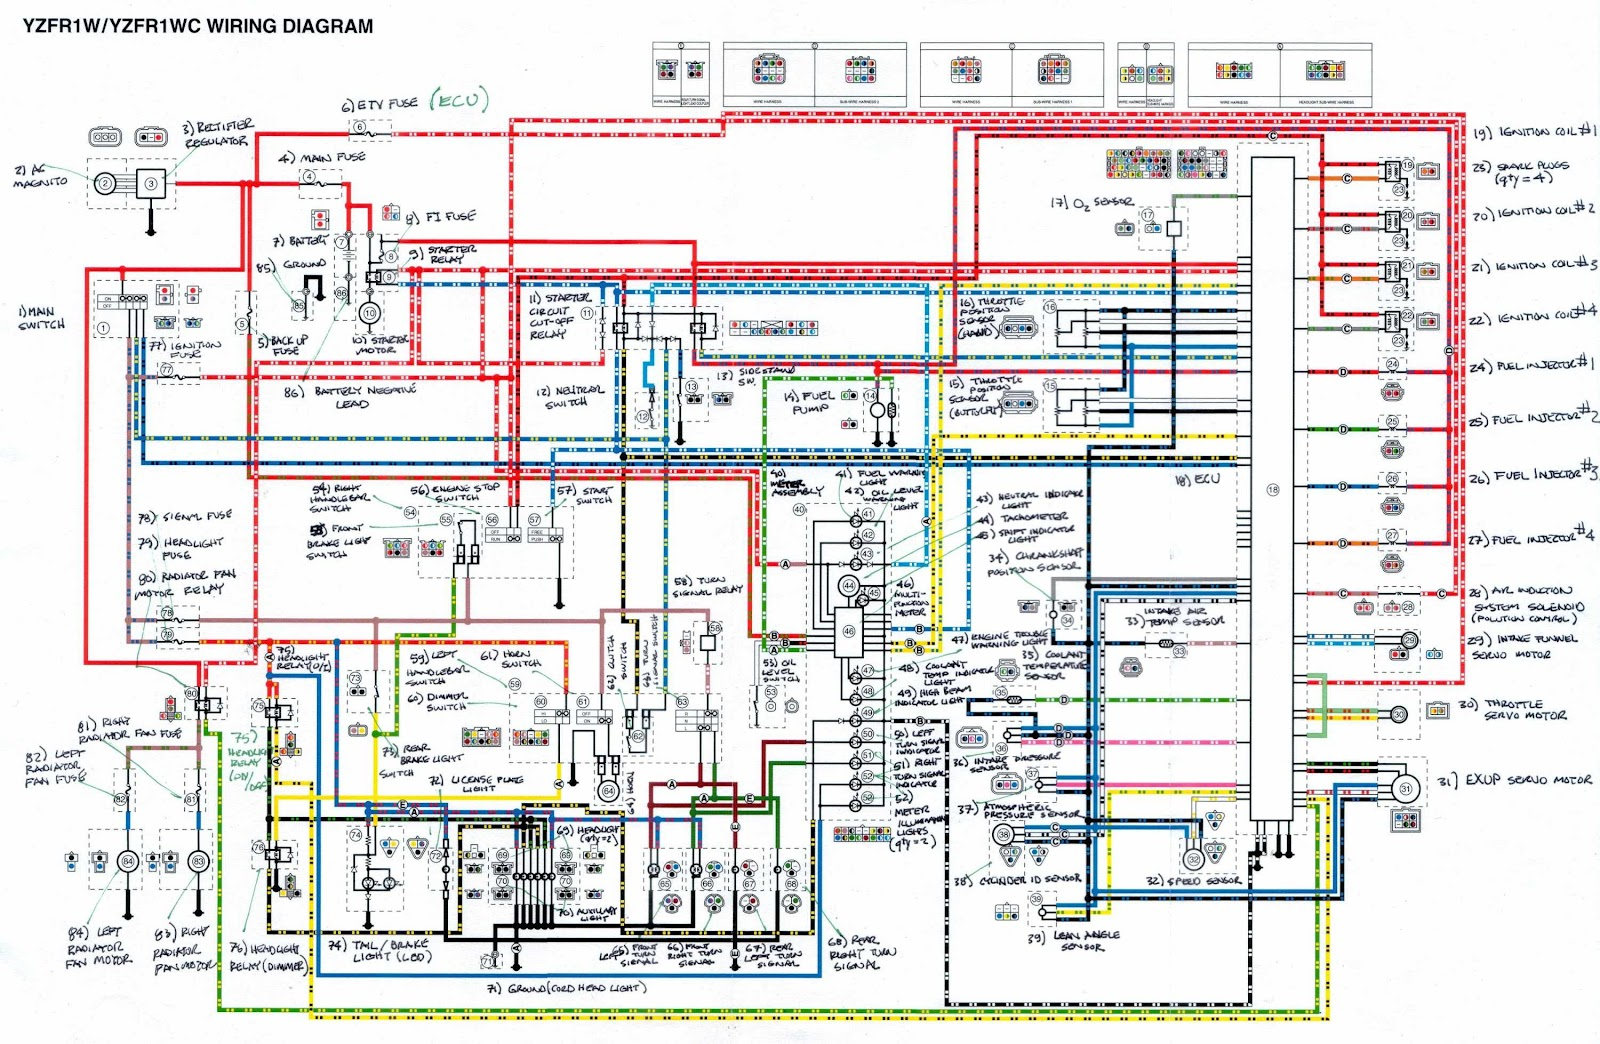 Wiring Diagram For Motorcycle 2016 Ford F150 Diagrams Yamaha Yzf R1 All About